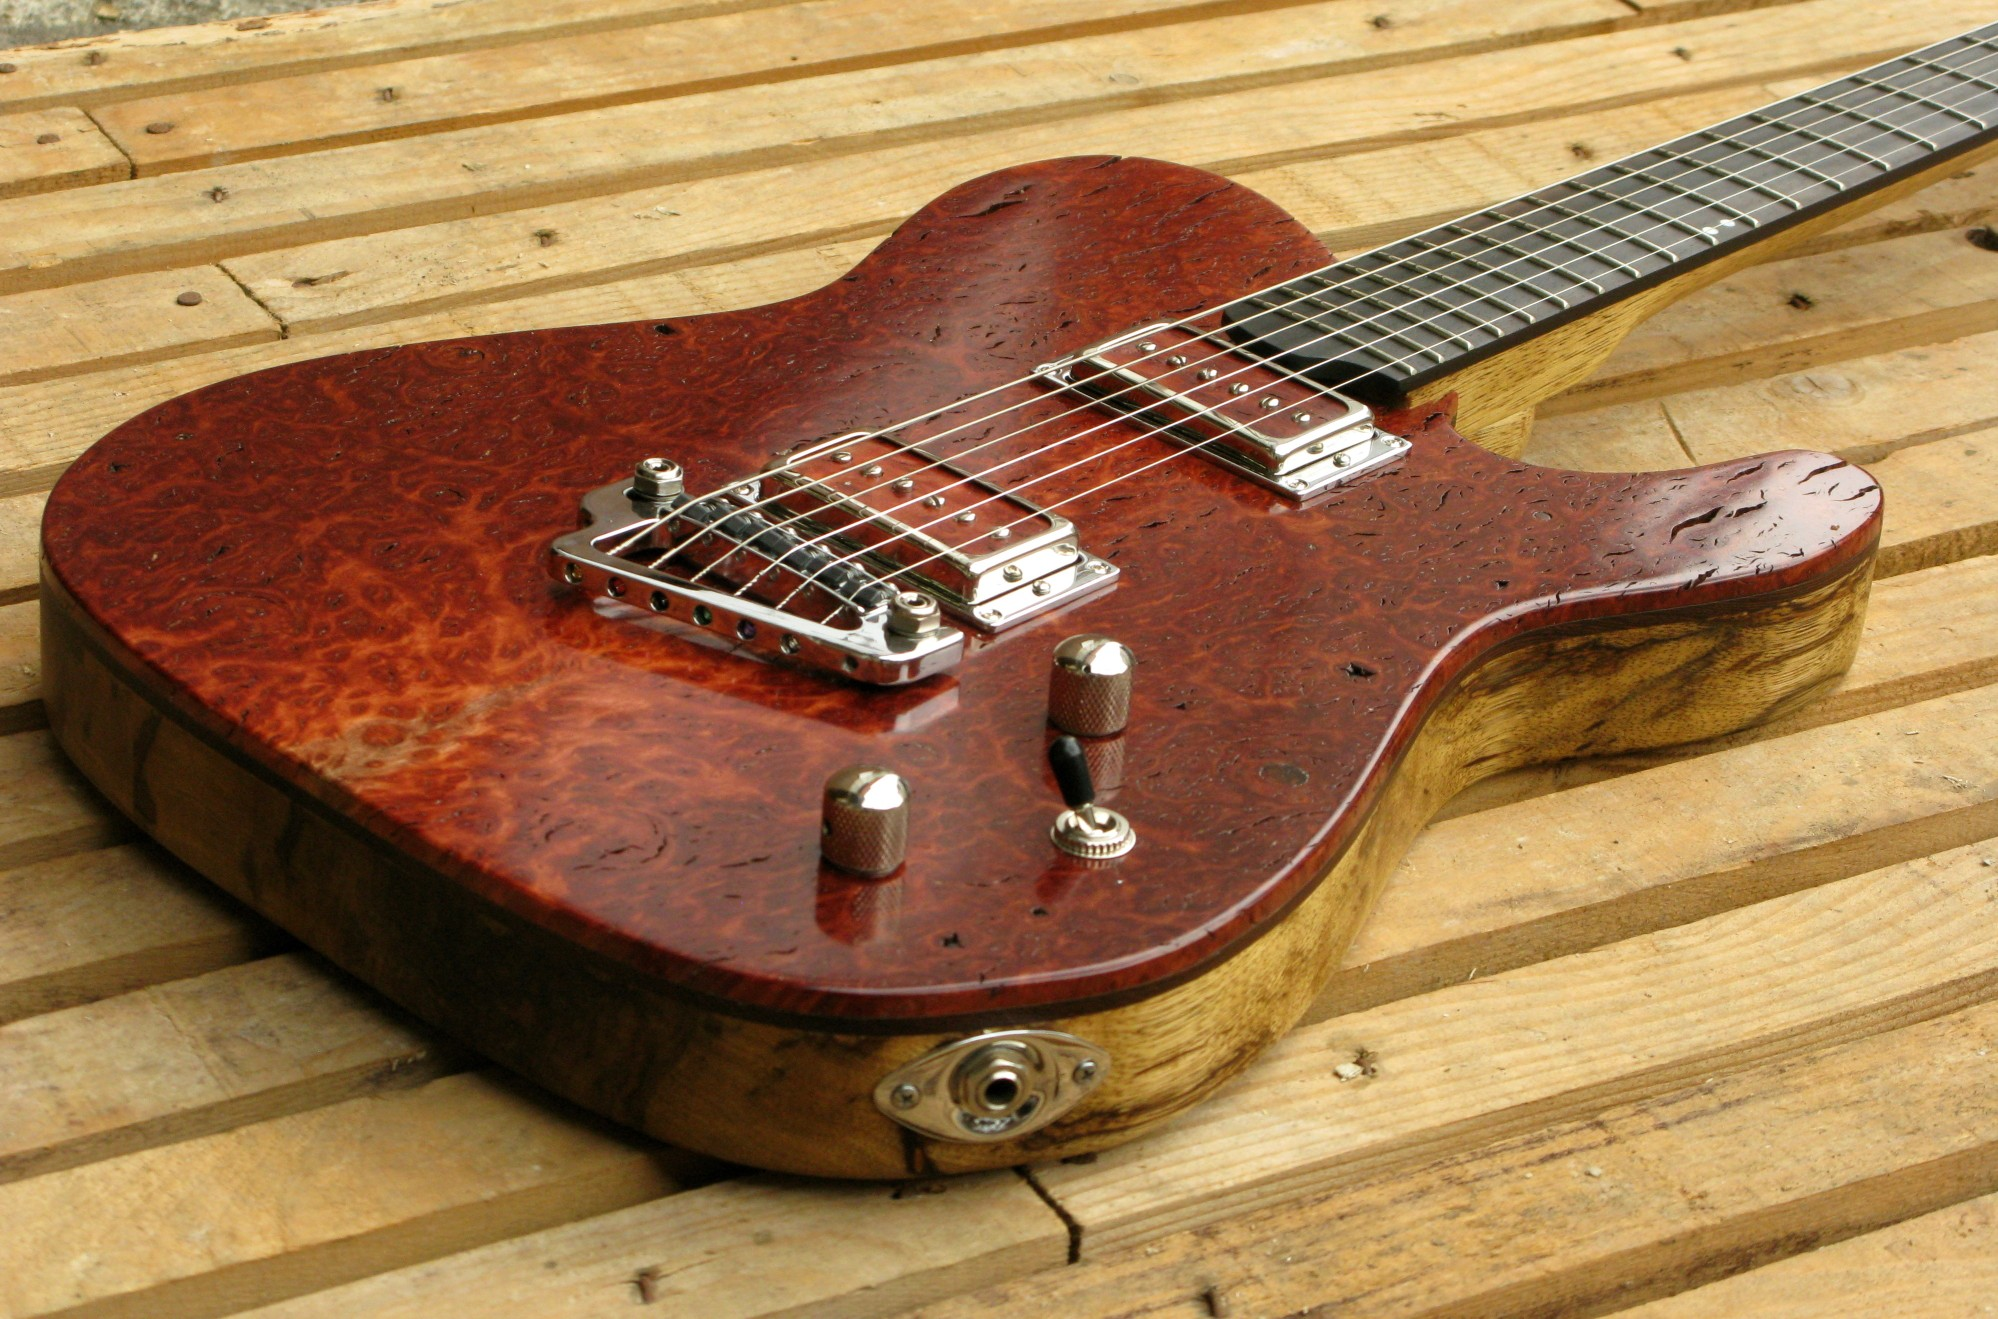 Body di una chitarra Telecaster top burl red